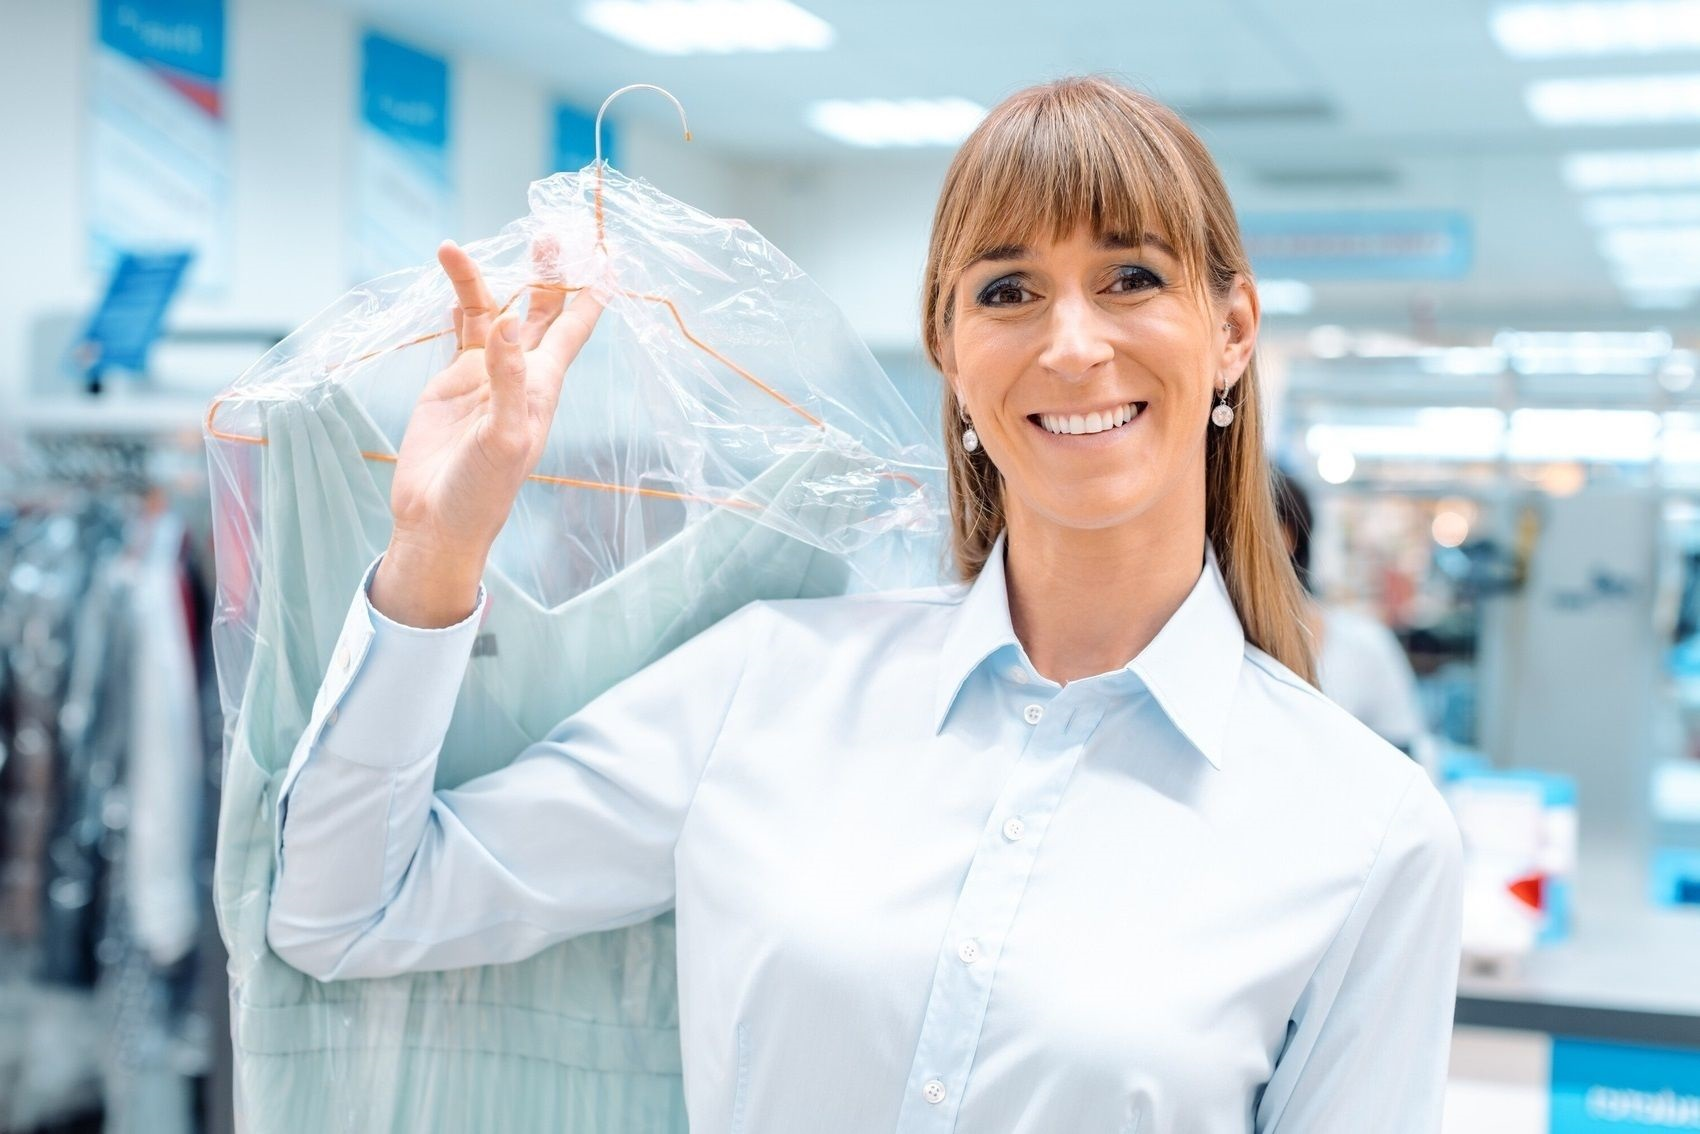 woman_delivering_laundry